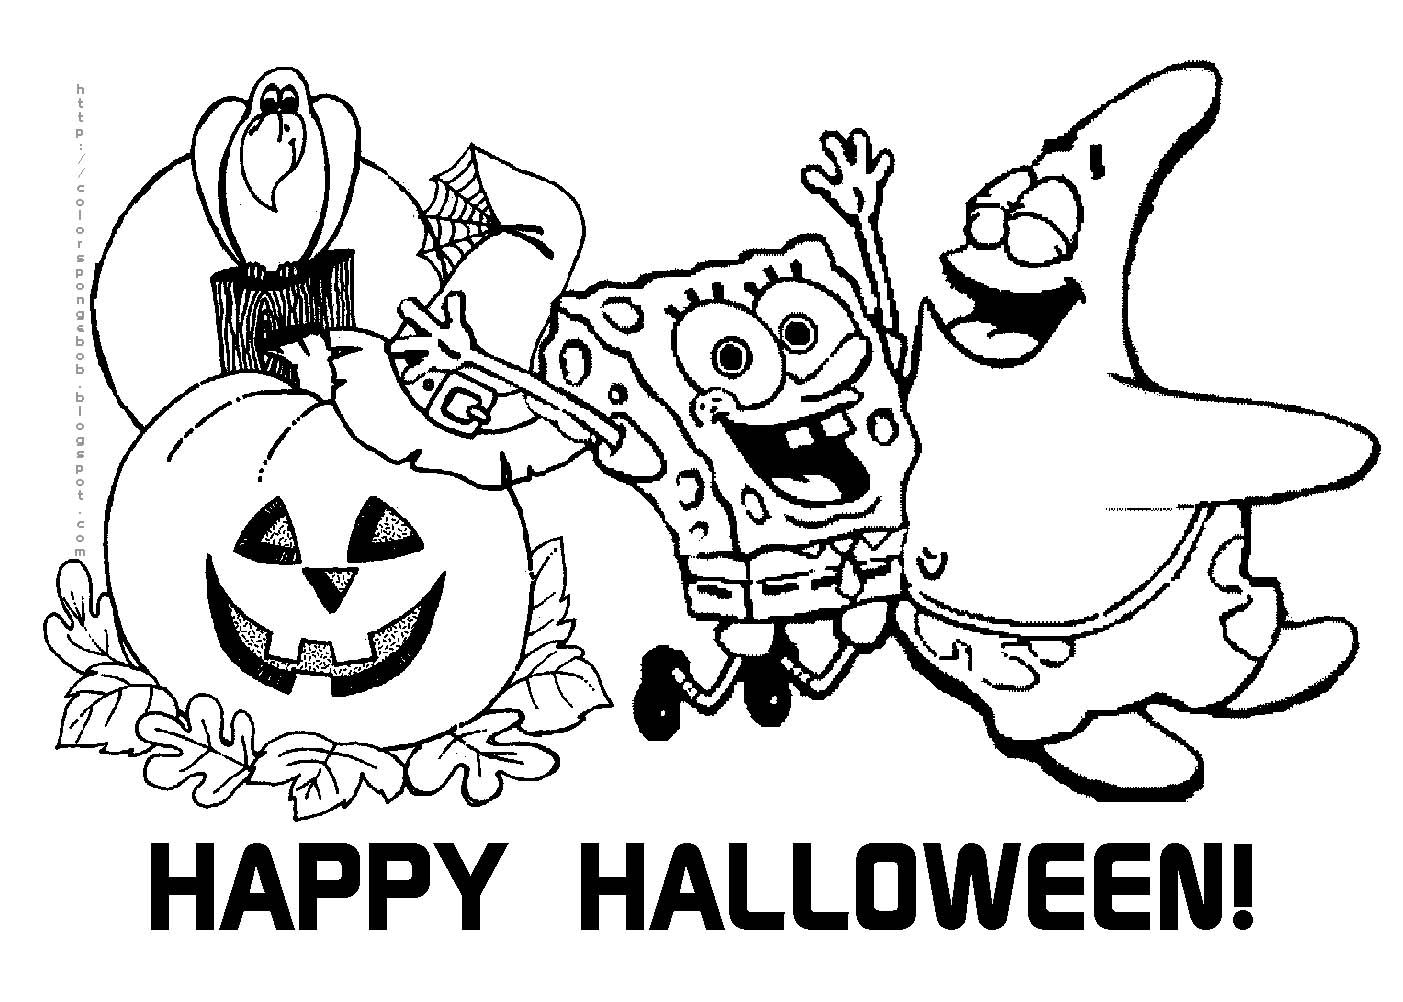 halloween spongebob coloring pages - photo#3